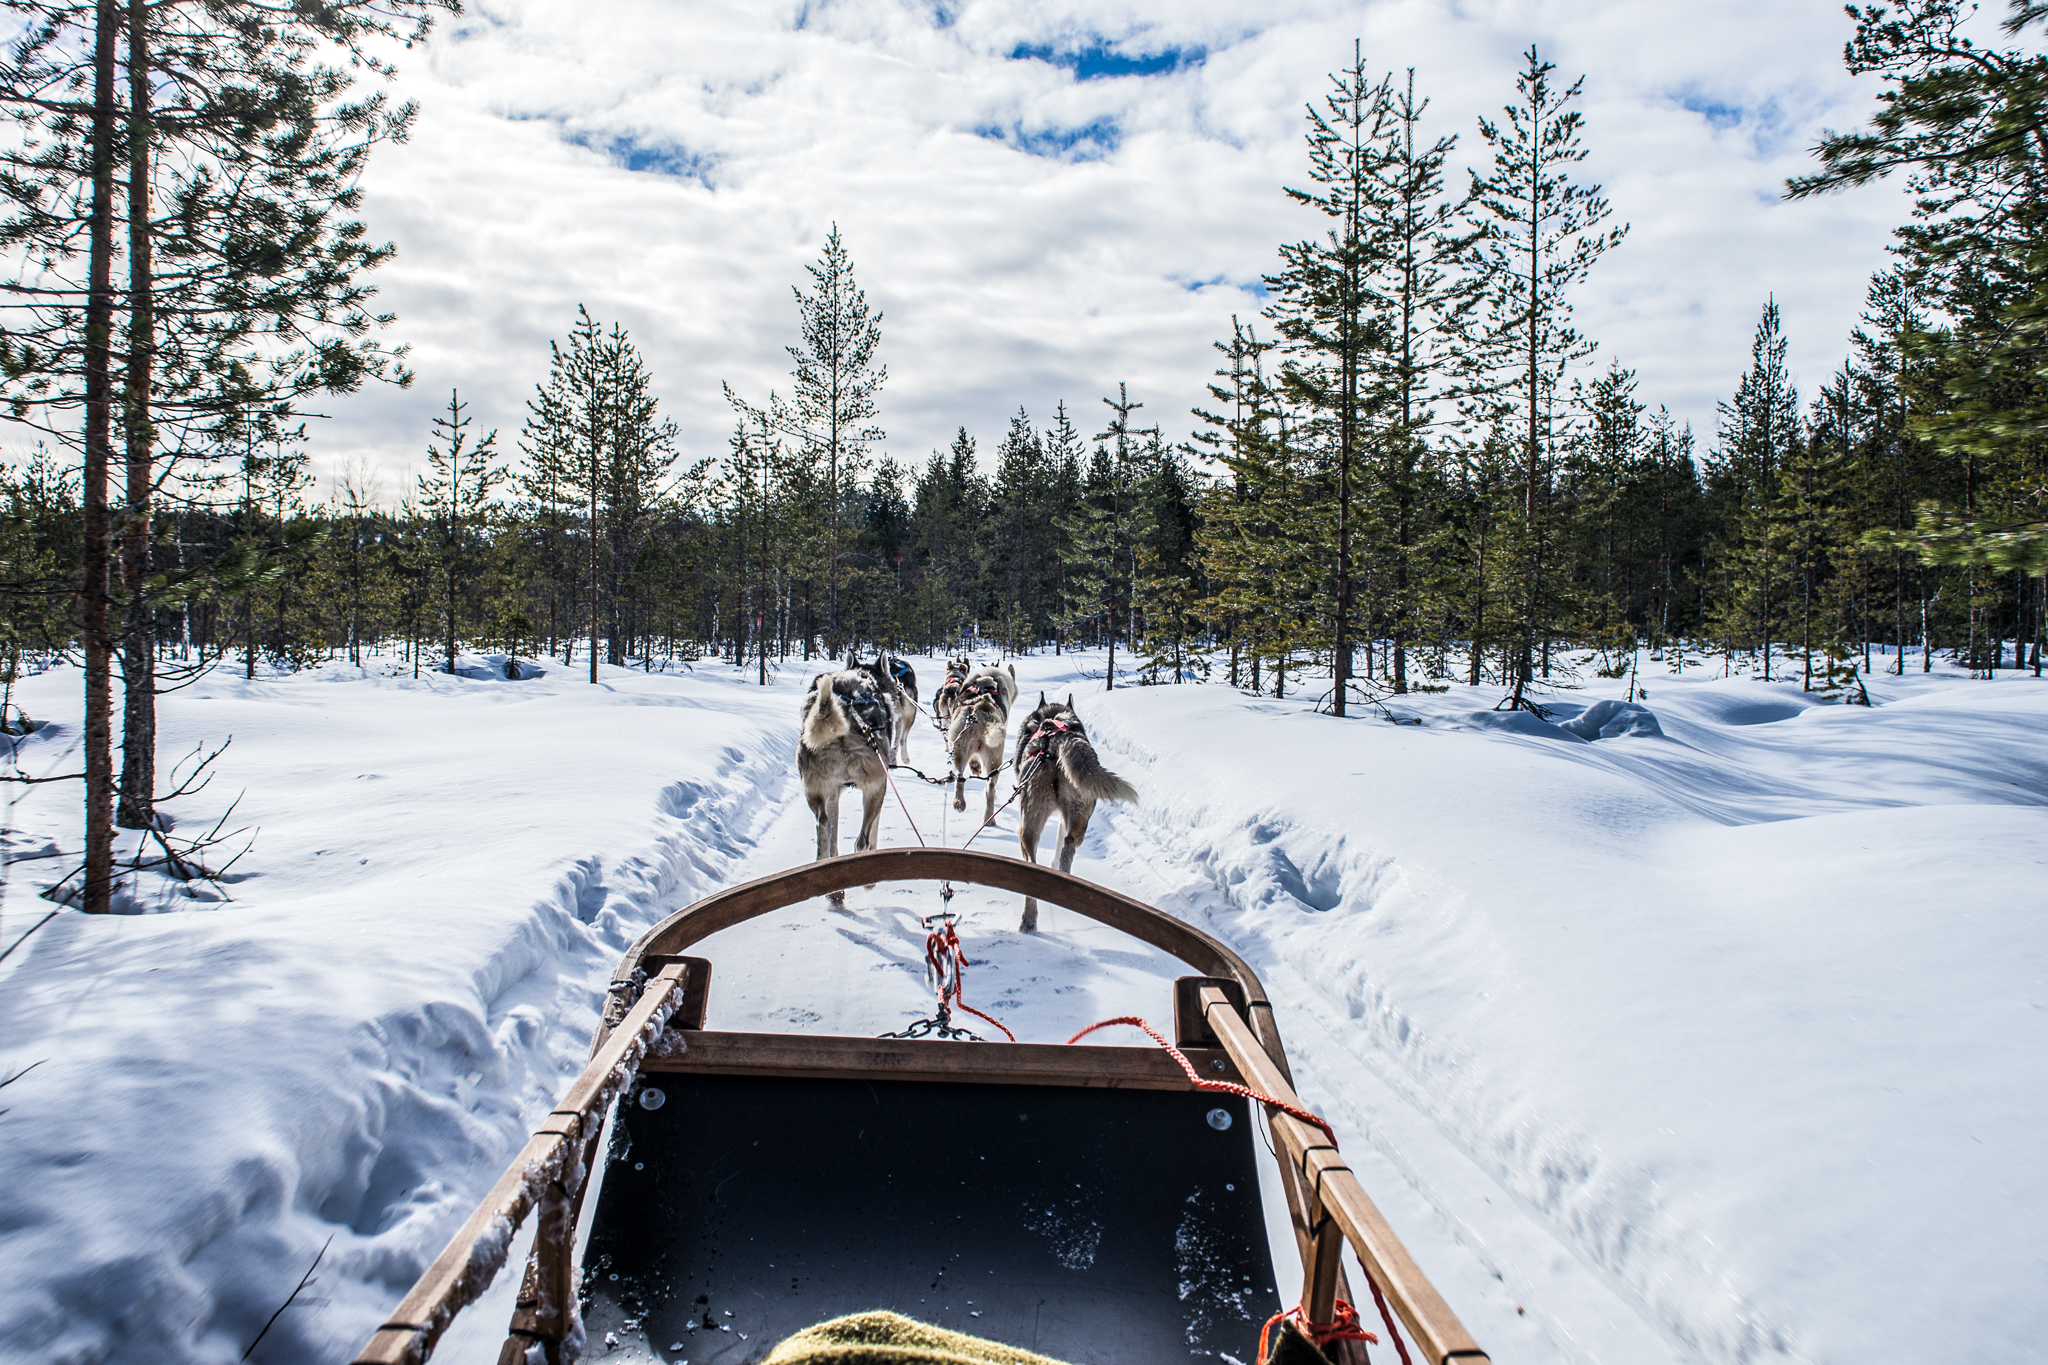 Huskies pulling a sleight in forest